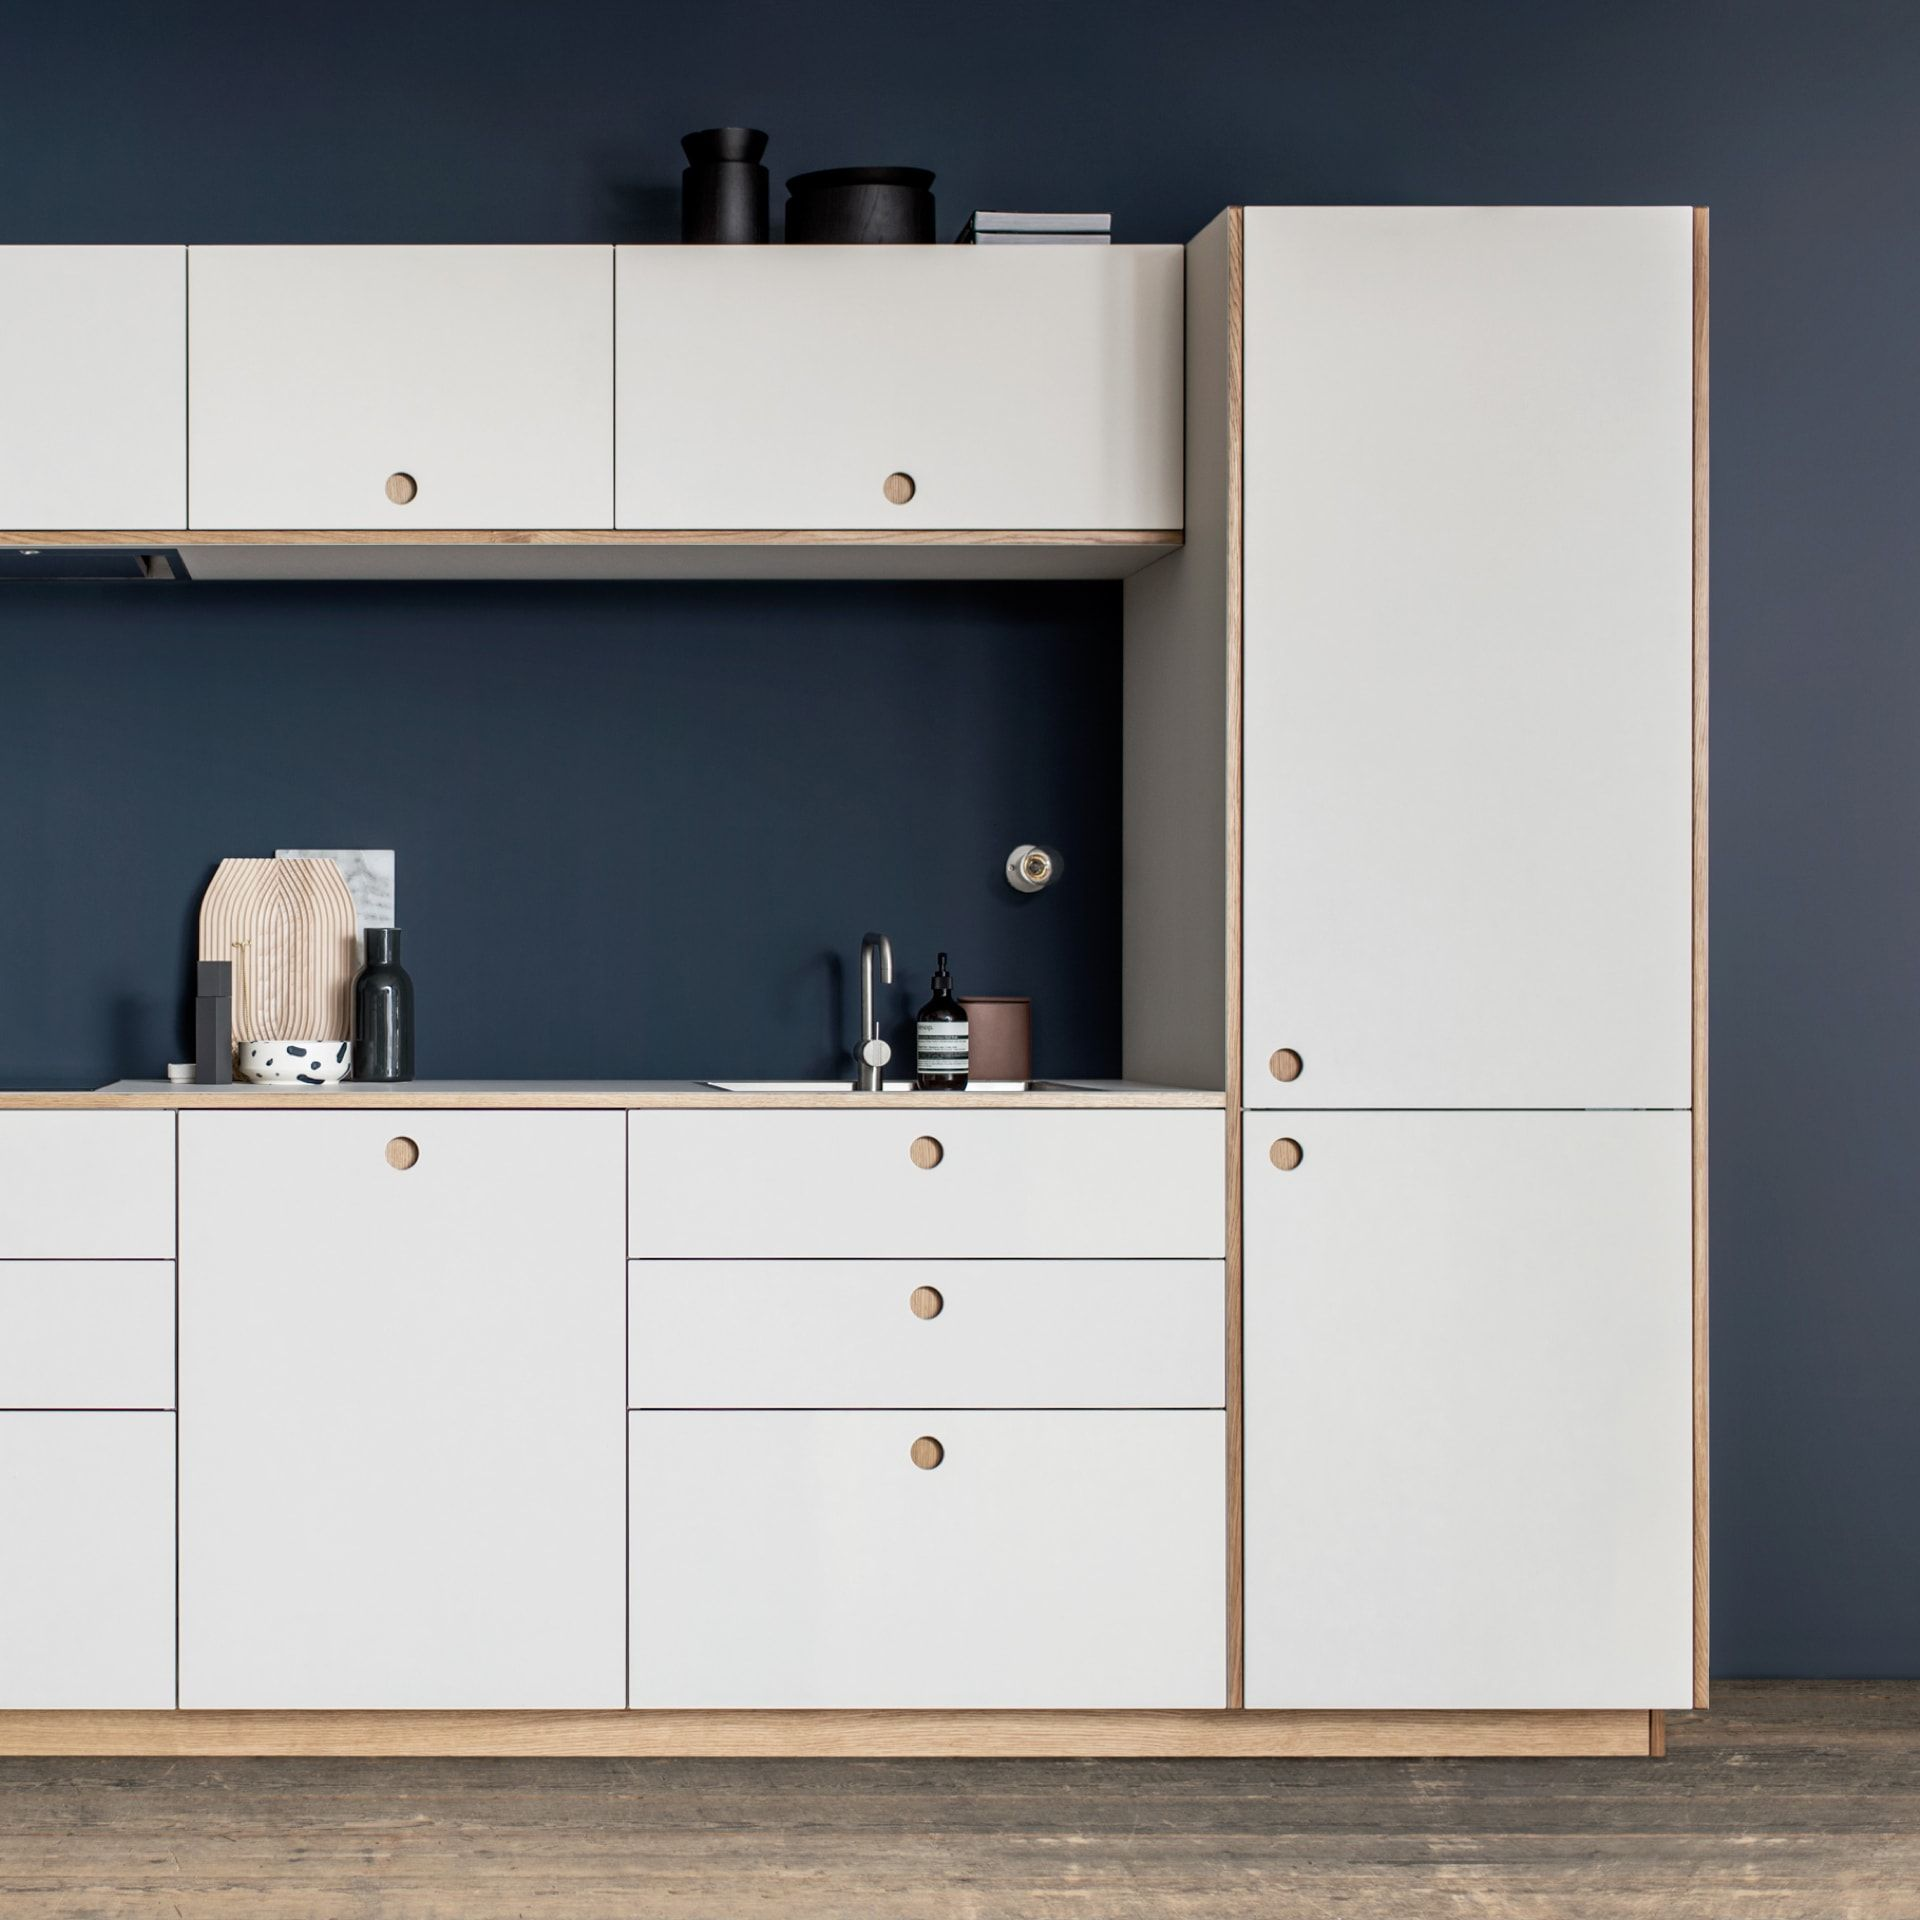 Are Ikea Kitchen Cabinets Good: Reference: The Orientation Of The Fridge Is Similar To My